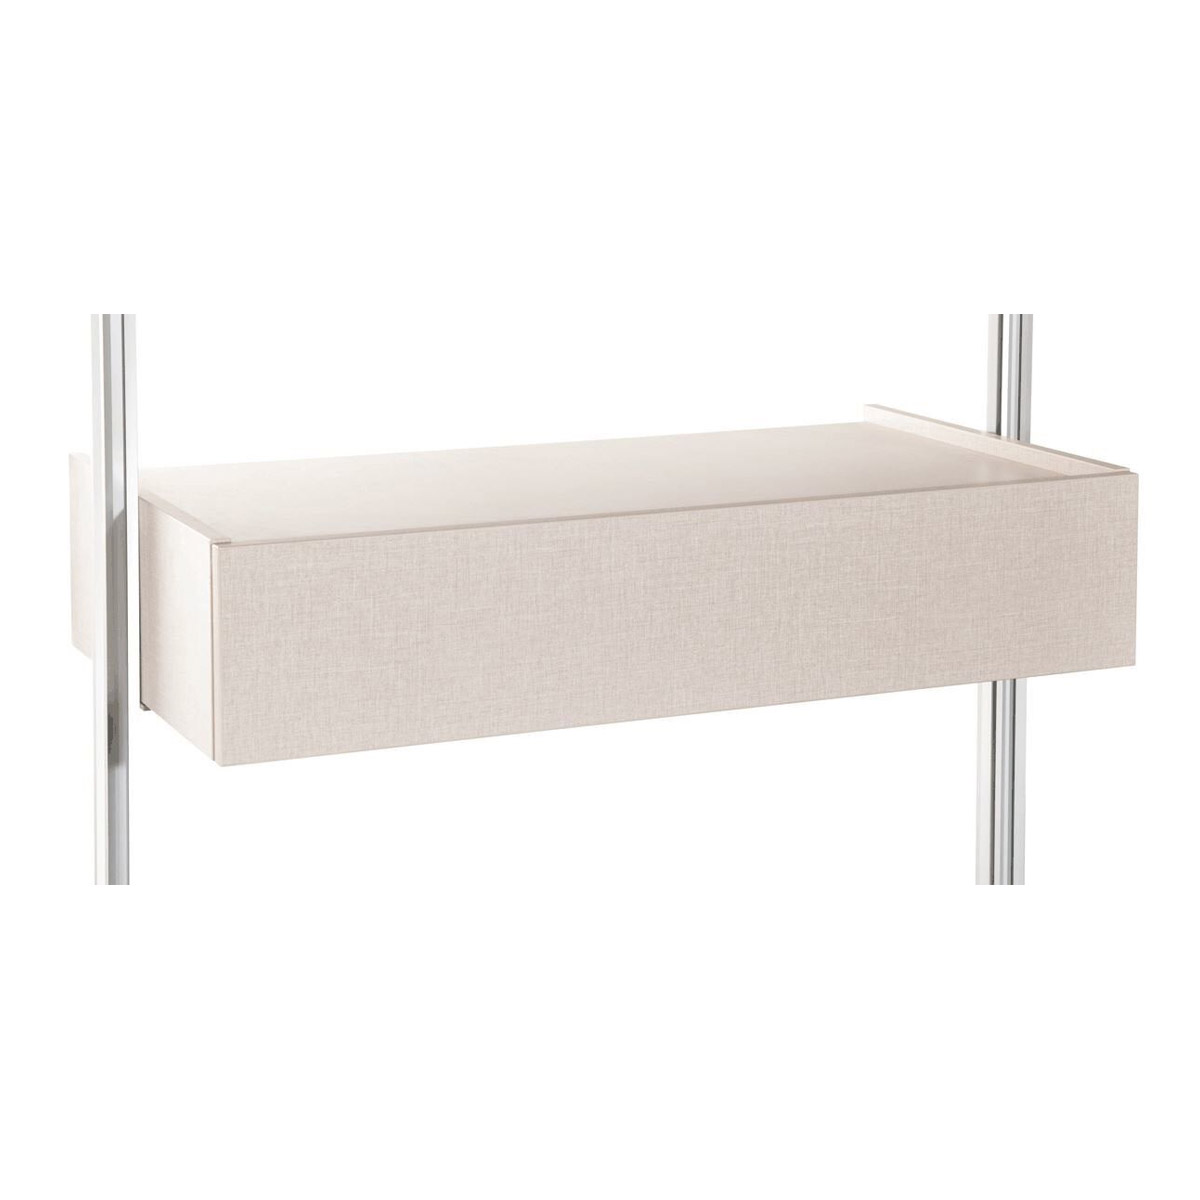 Relax Linen Trouser Rack Kit 900mm